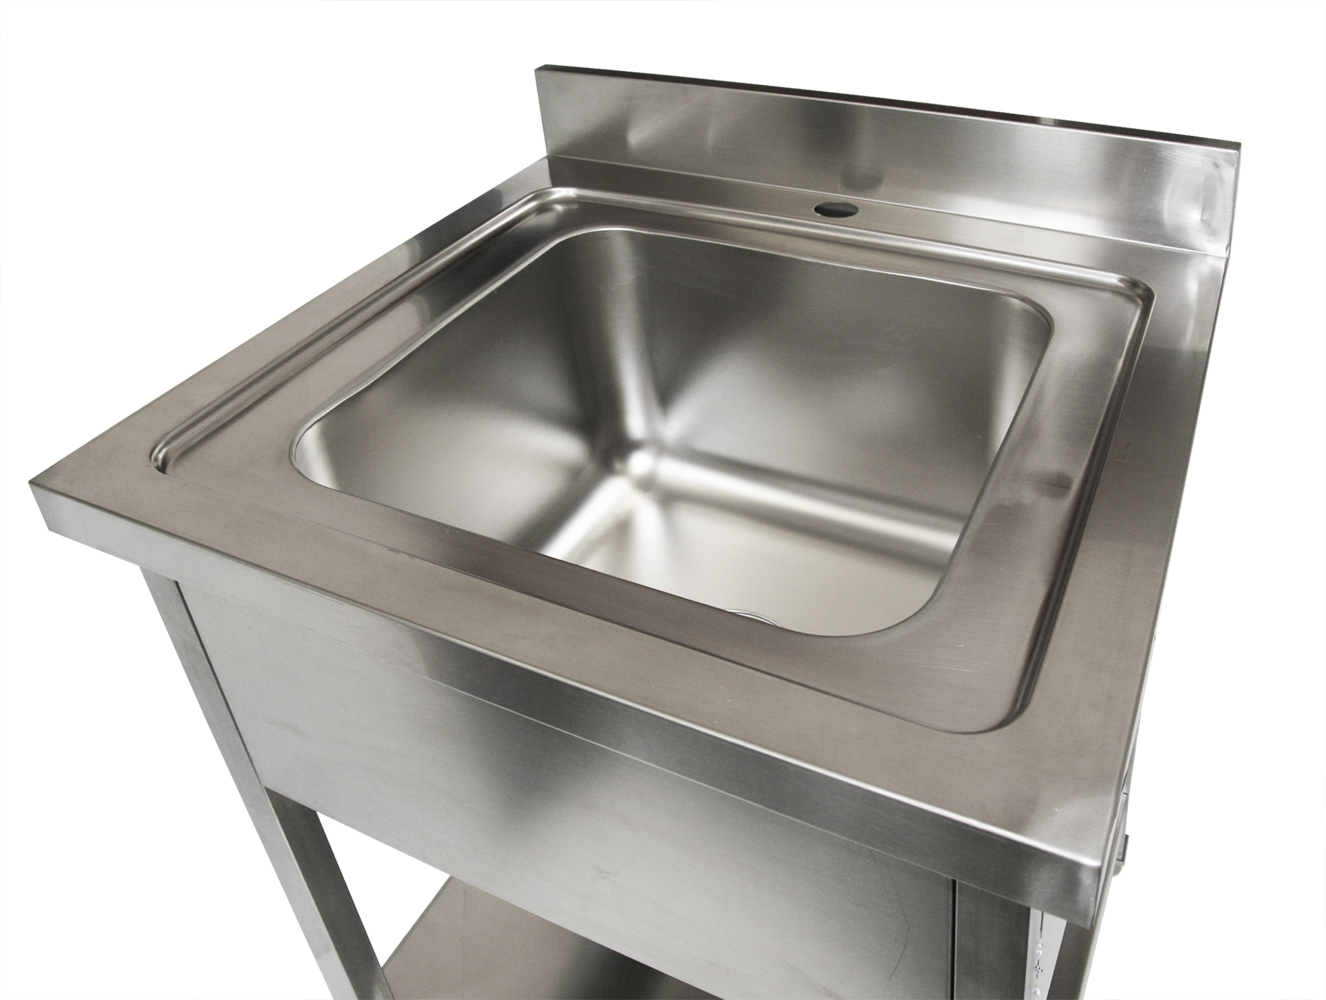 700x700 new commercial single bowl kitchen sink 304